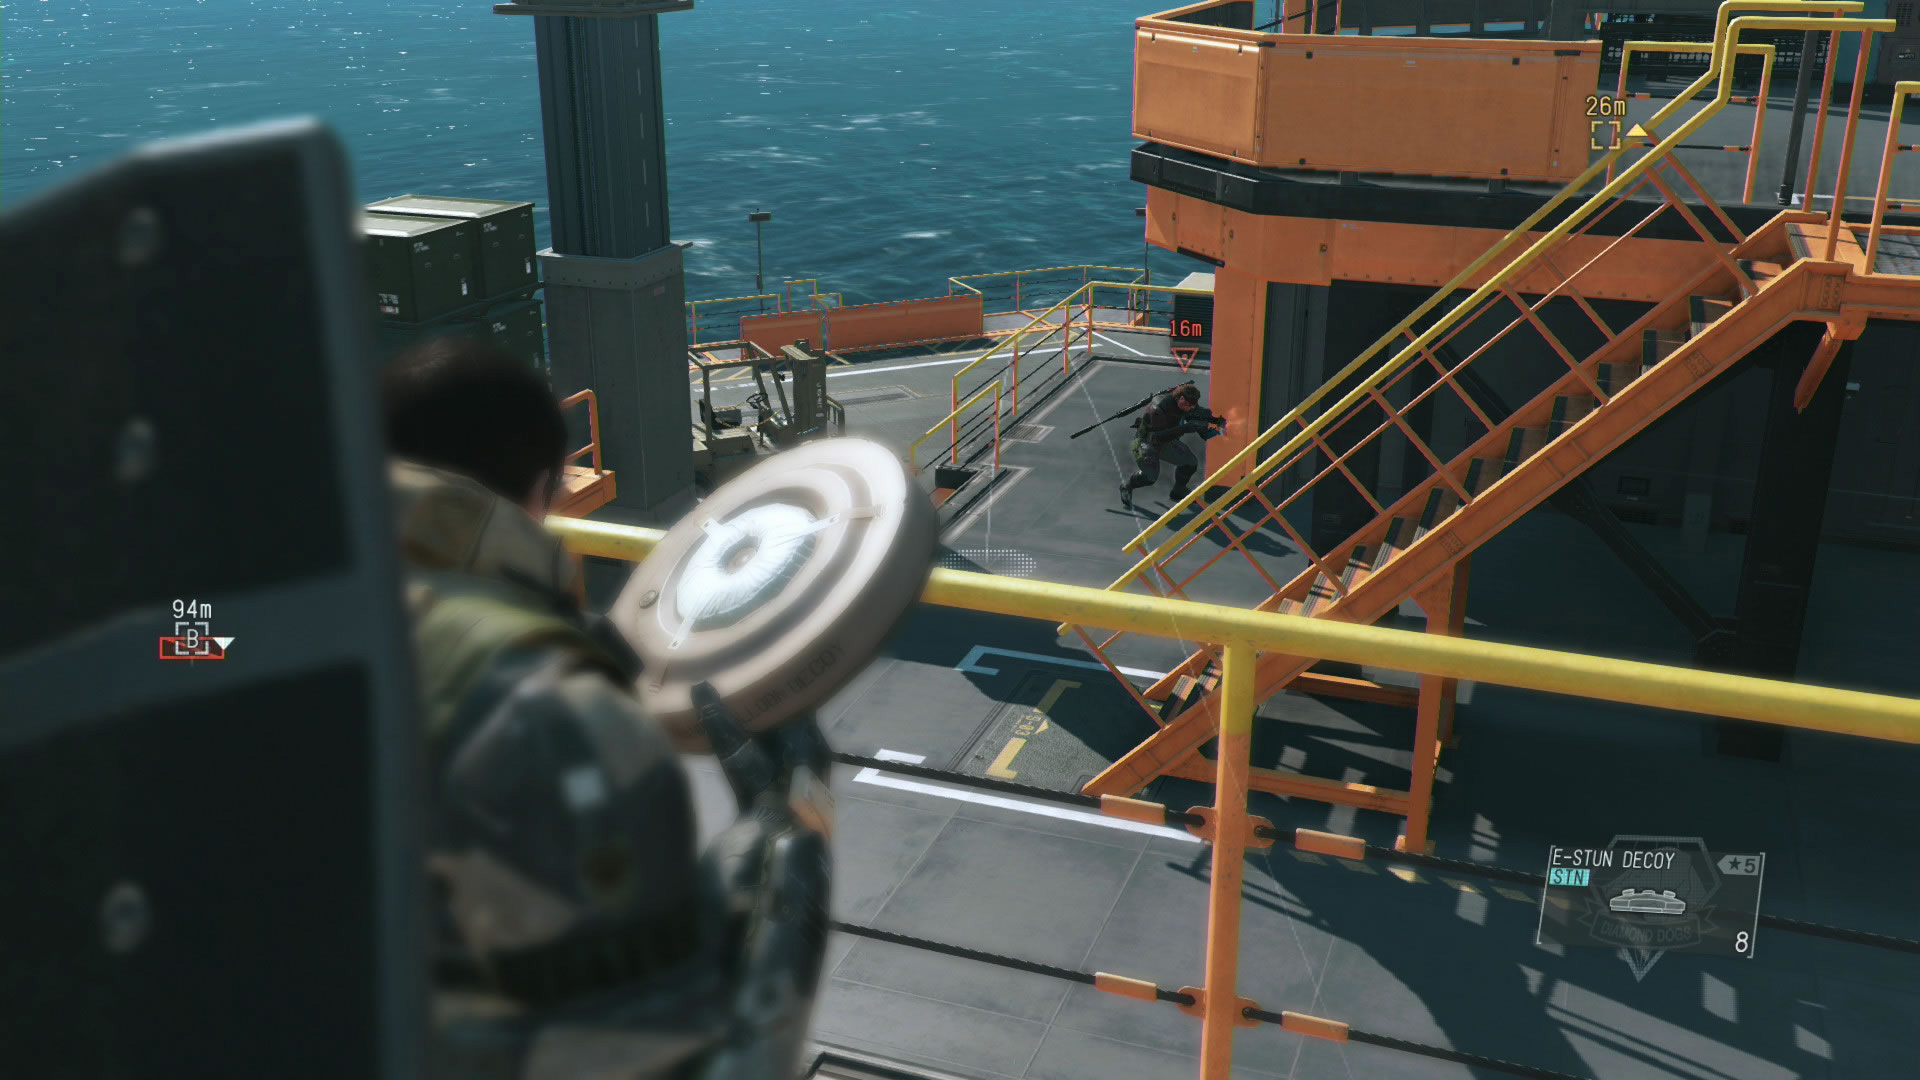 Metal-Gear-Solid-V-The-Phantom-Pain-Screenshot-Gamescom-2015-7